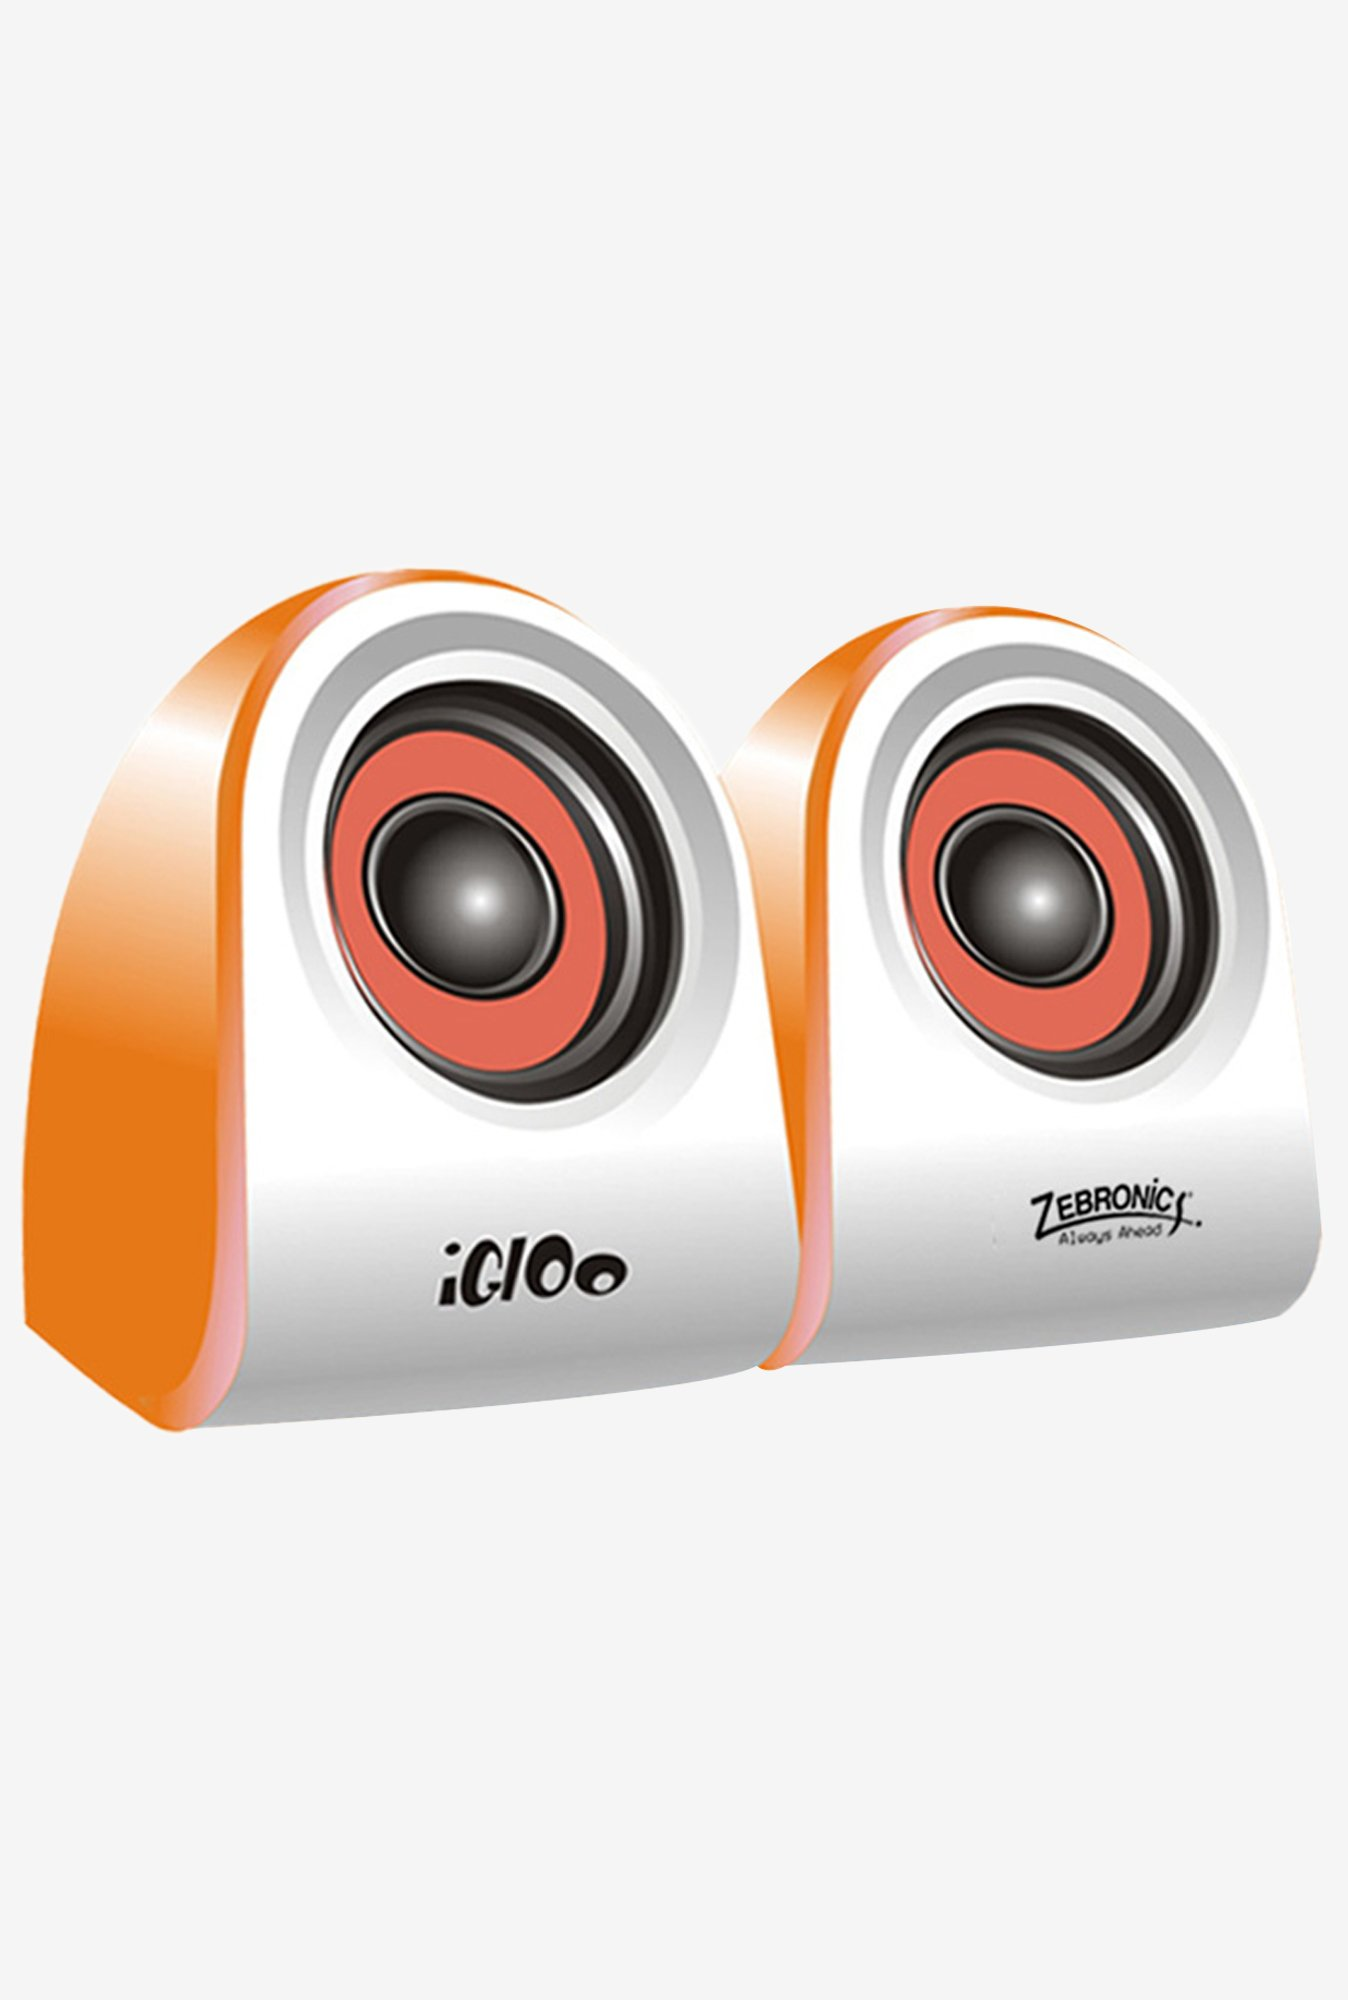 Zebronics Igloo Computer Speakers Orange